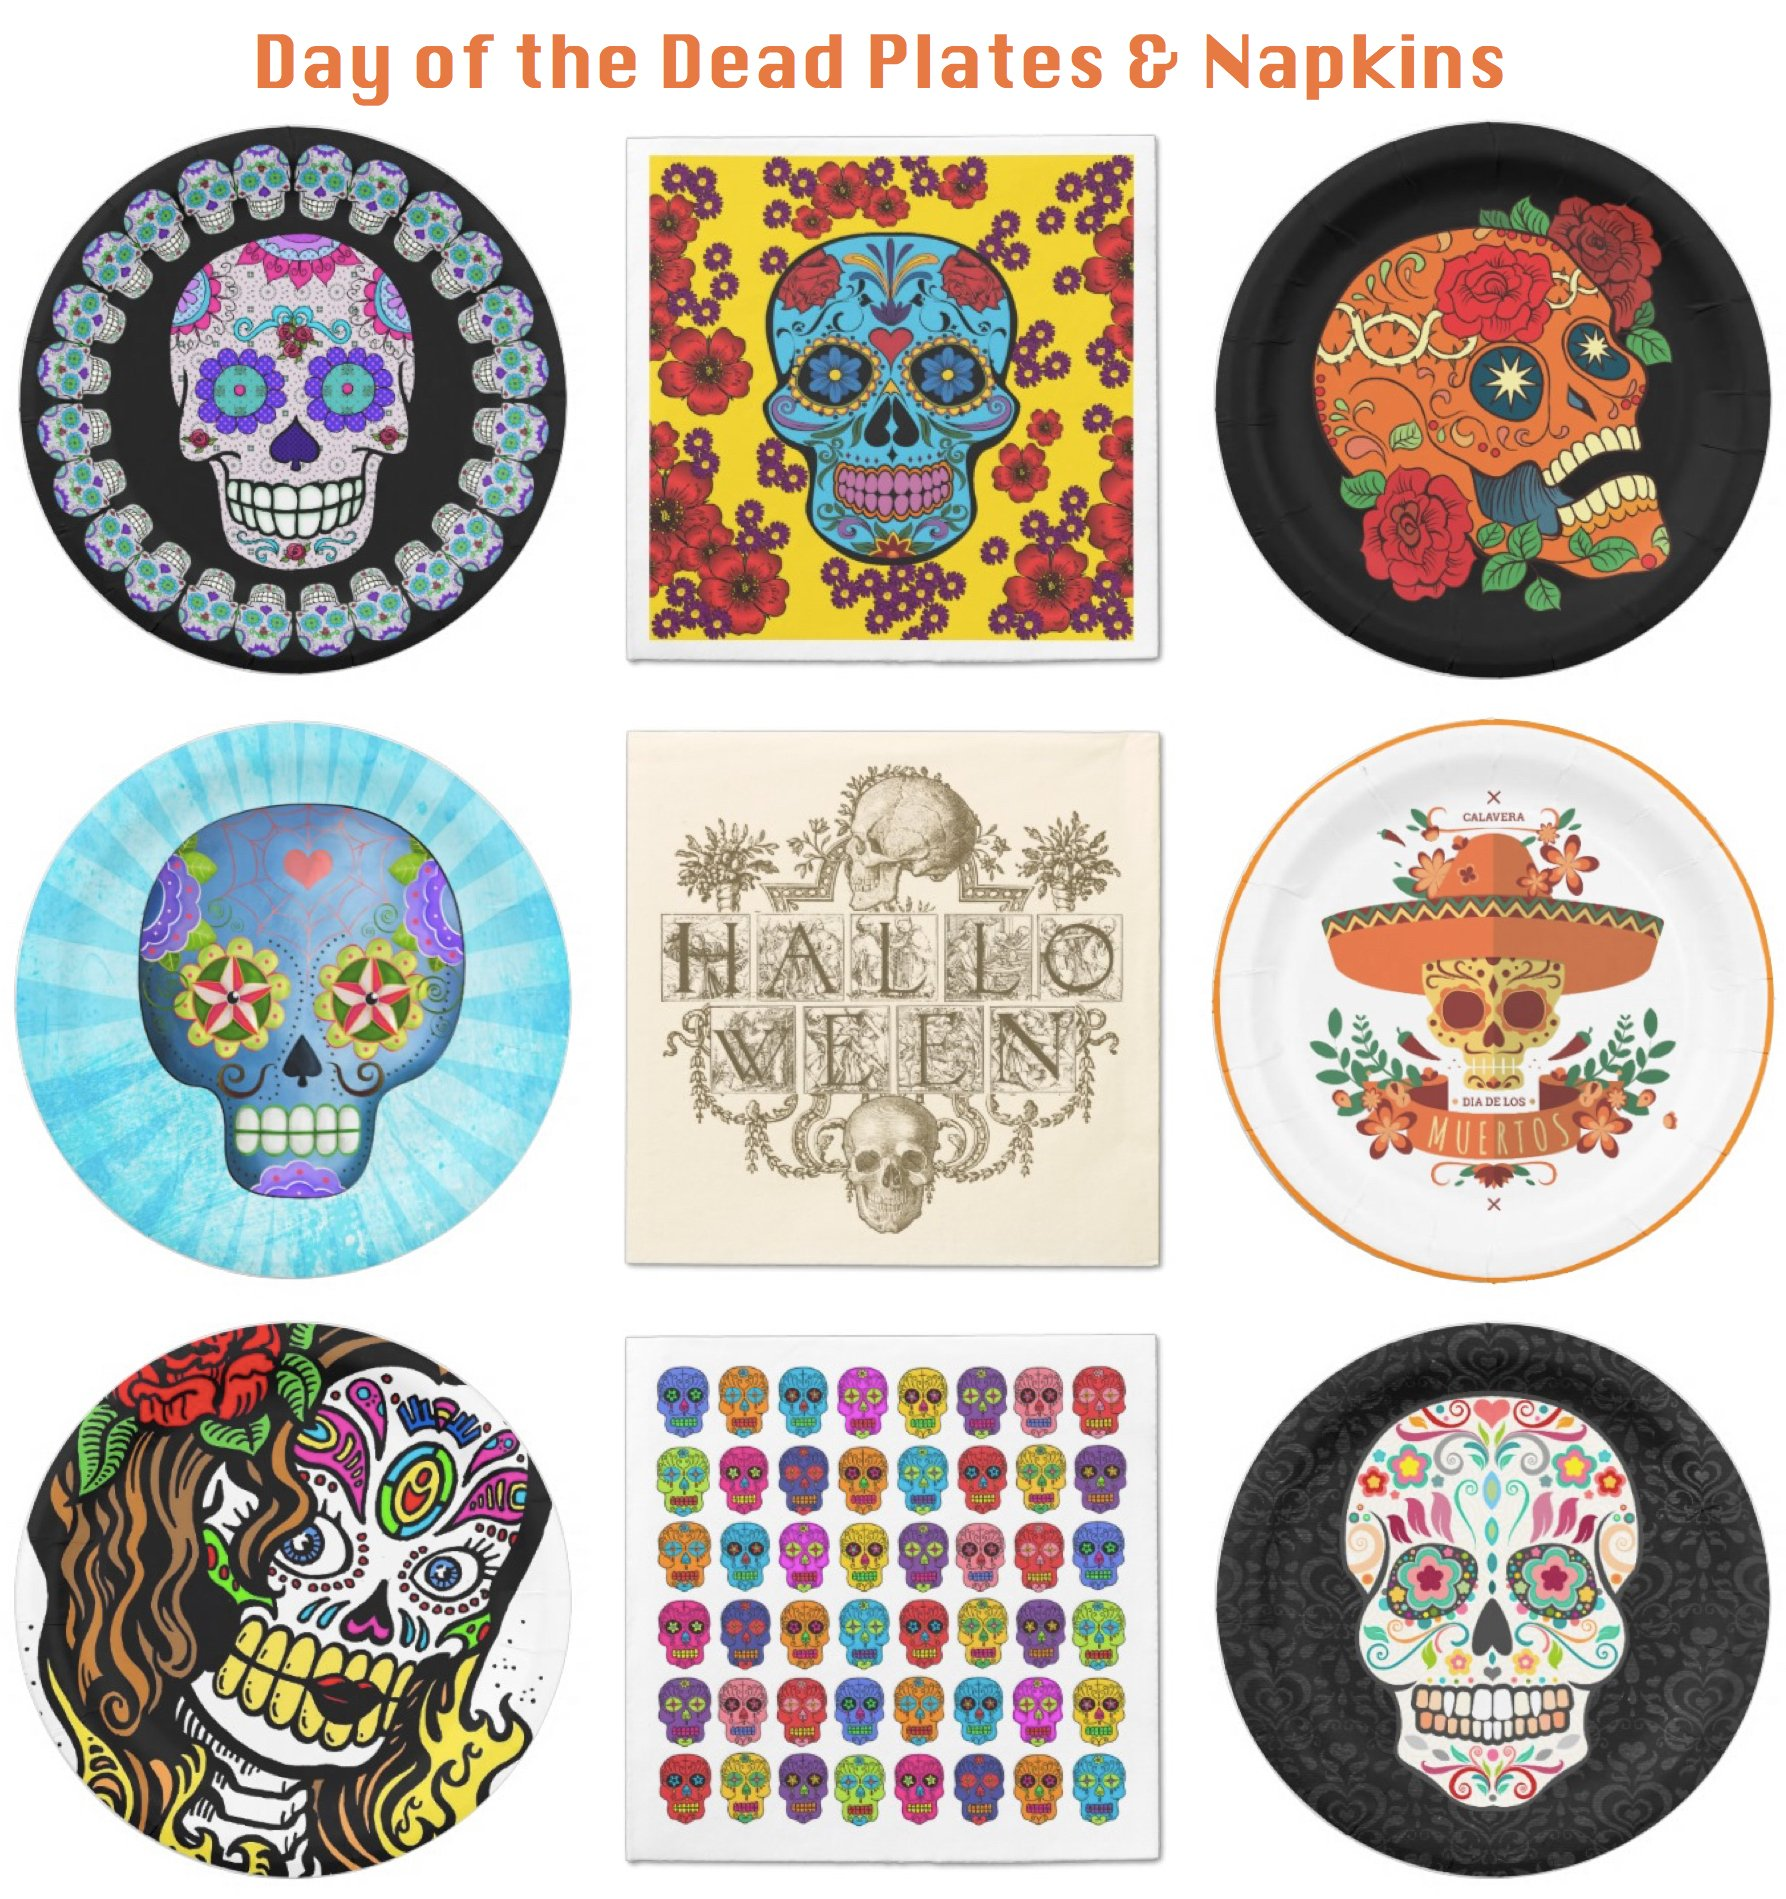 Day of the Dead Plates and Napkins